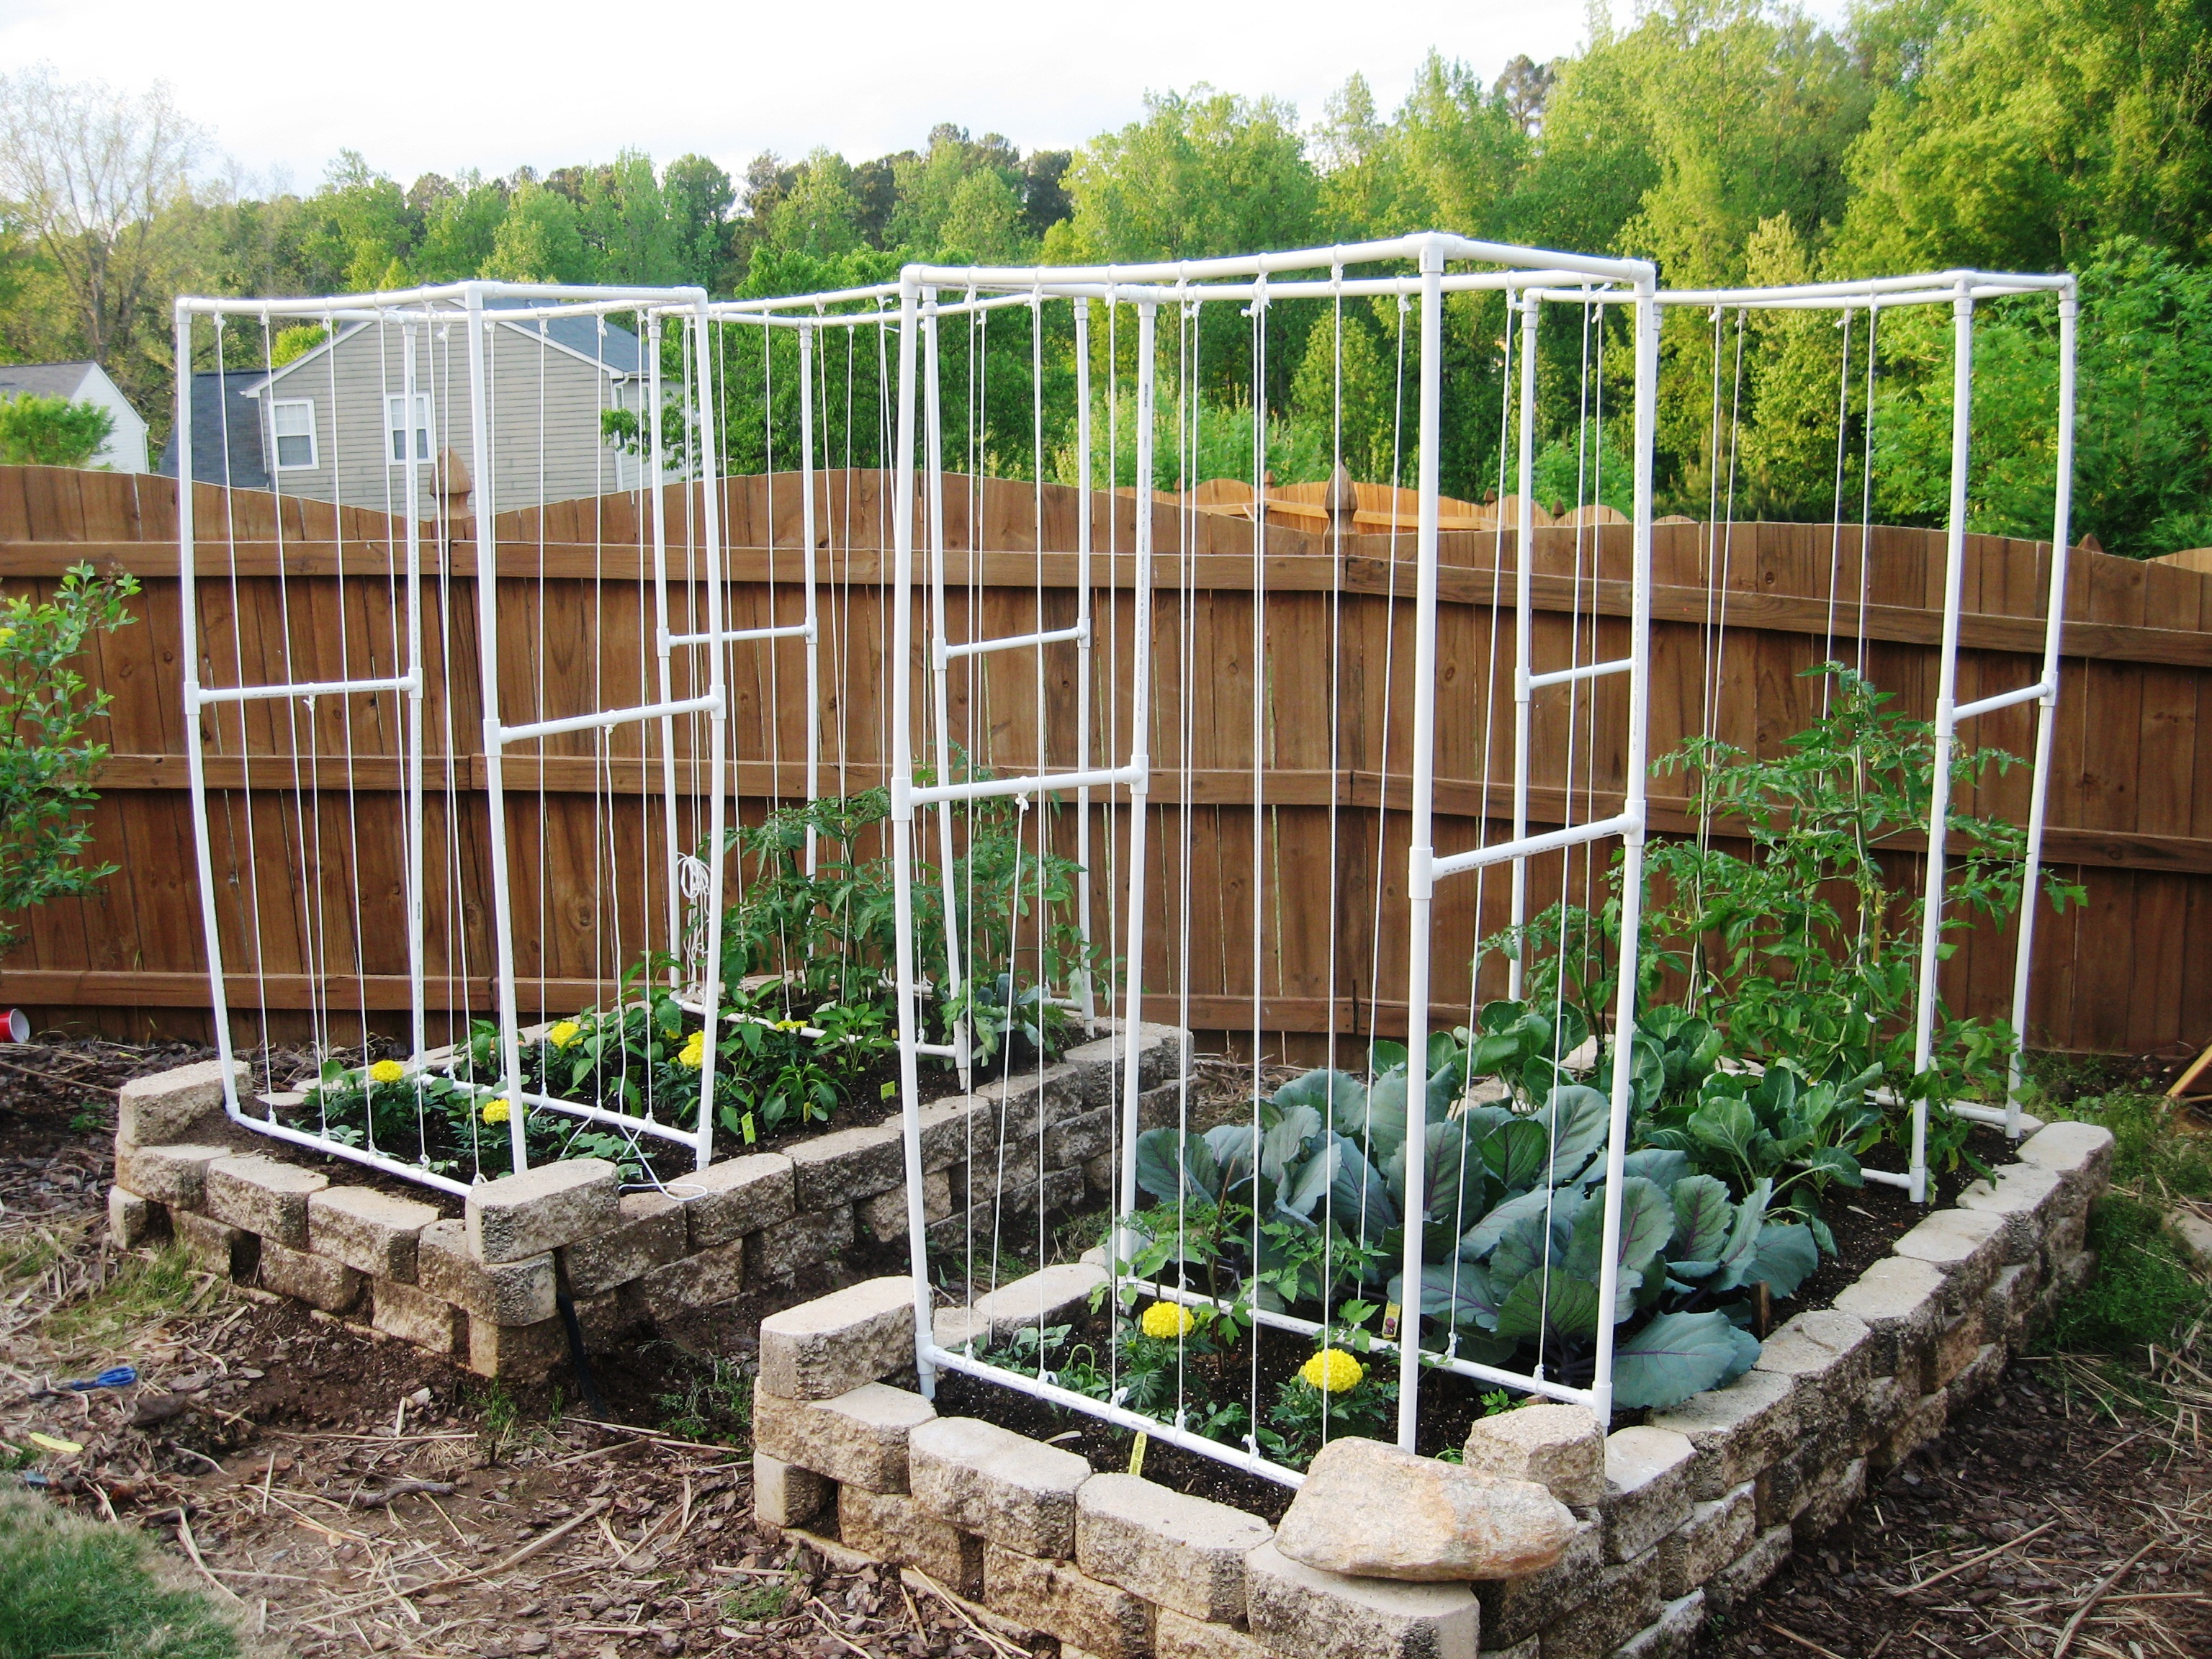 Typical Square Foot Garden With Pvc Frames For Vertical Plants